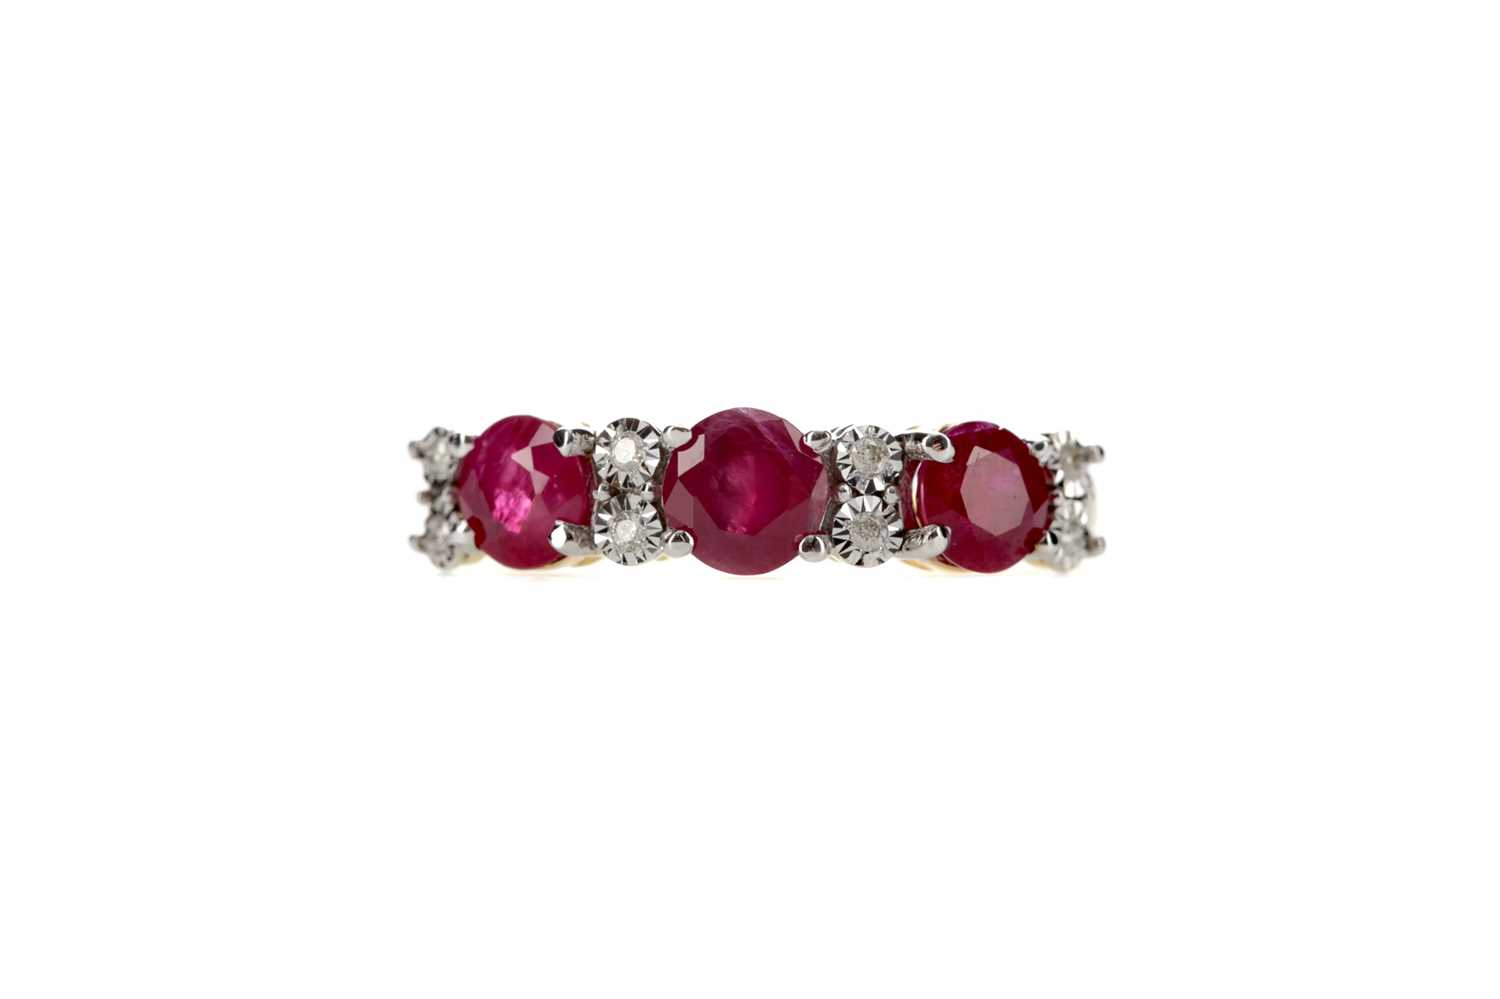 Lot 330 - A RUBY AND DIAMOND RING